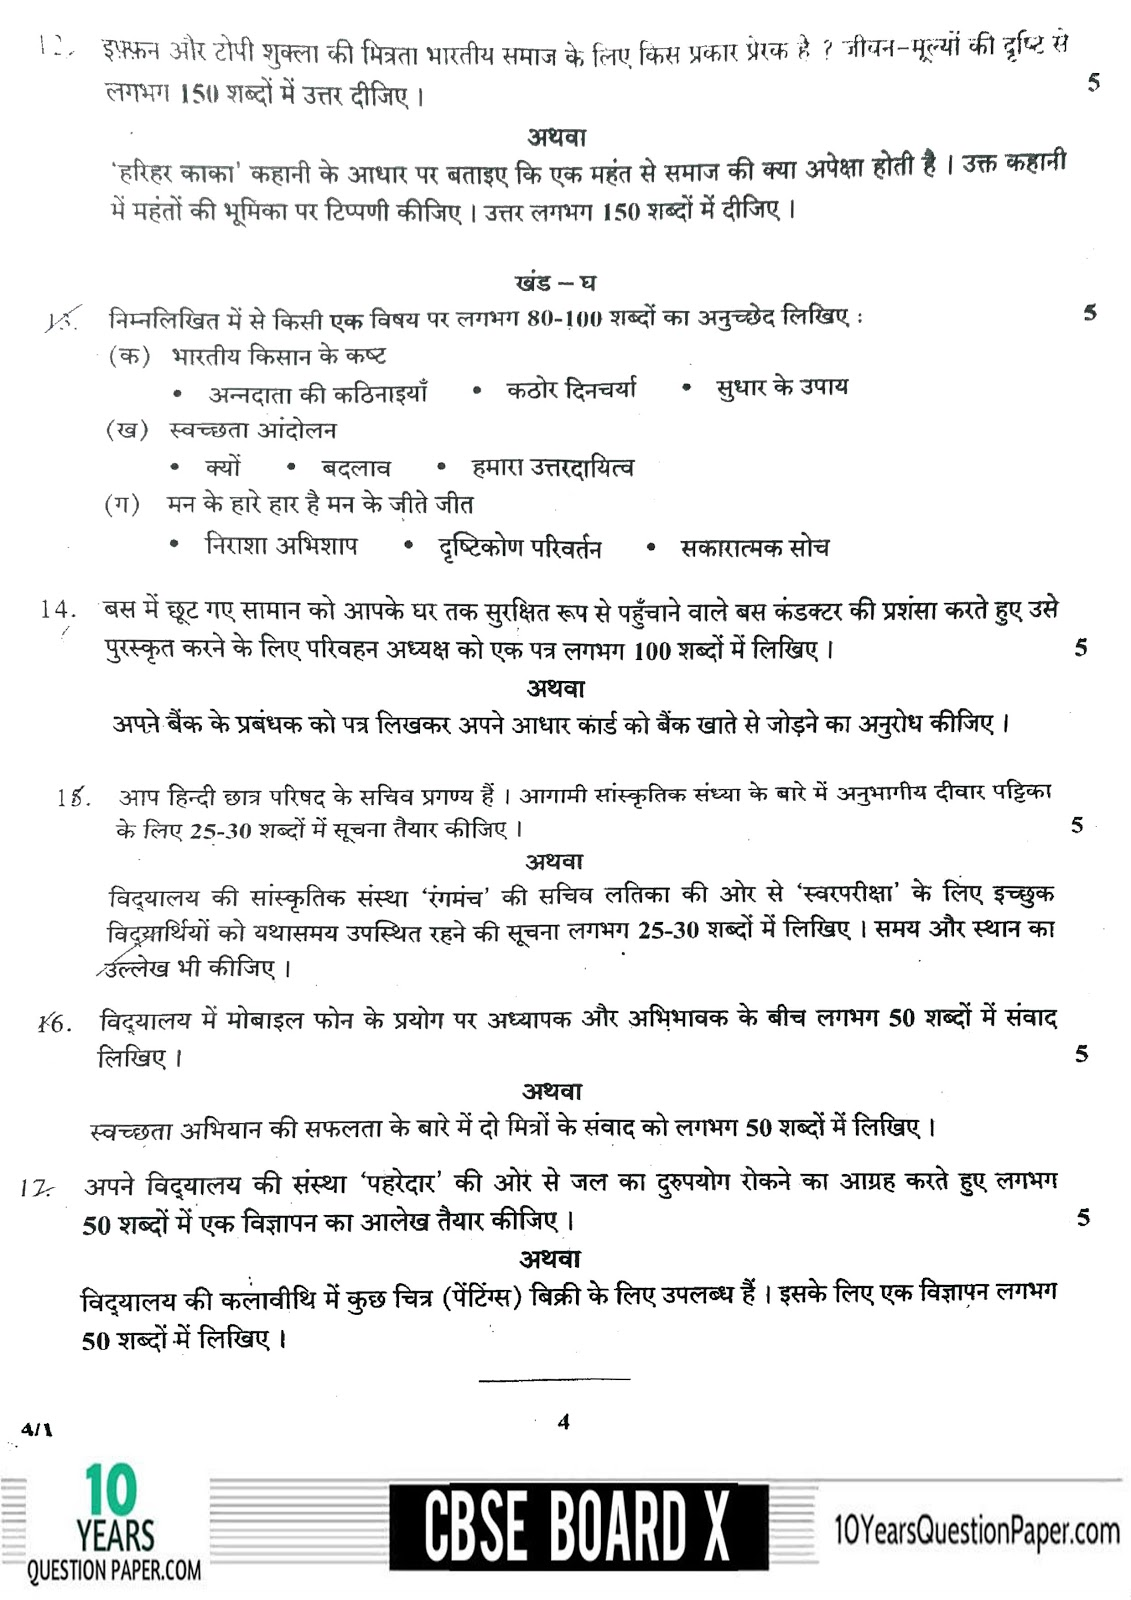 CBSE Board 2018 Hindi Course B Question paper Class 10 Page-04